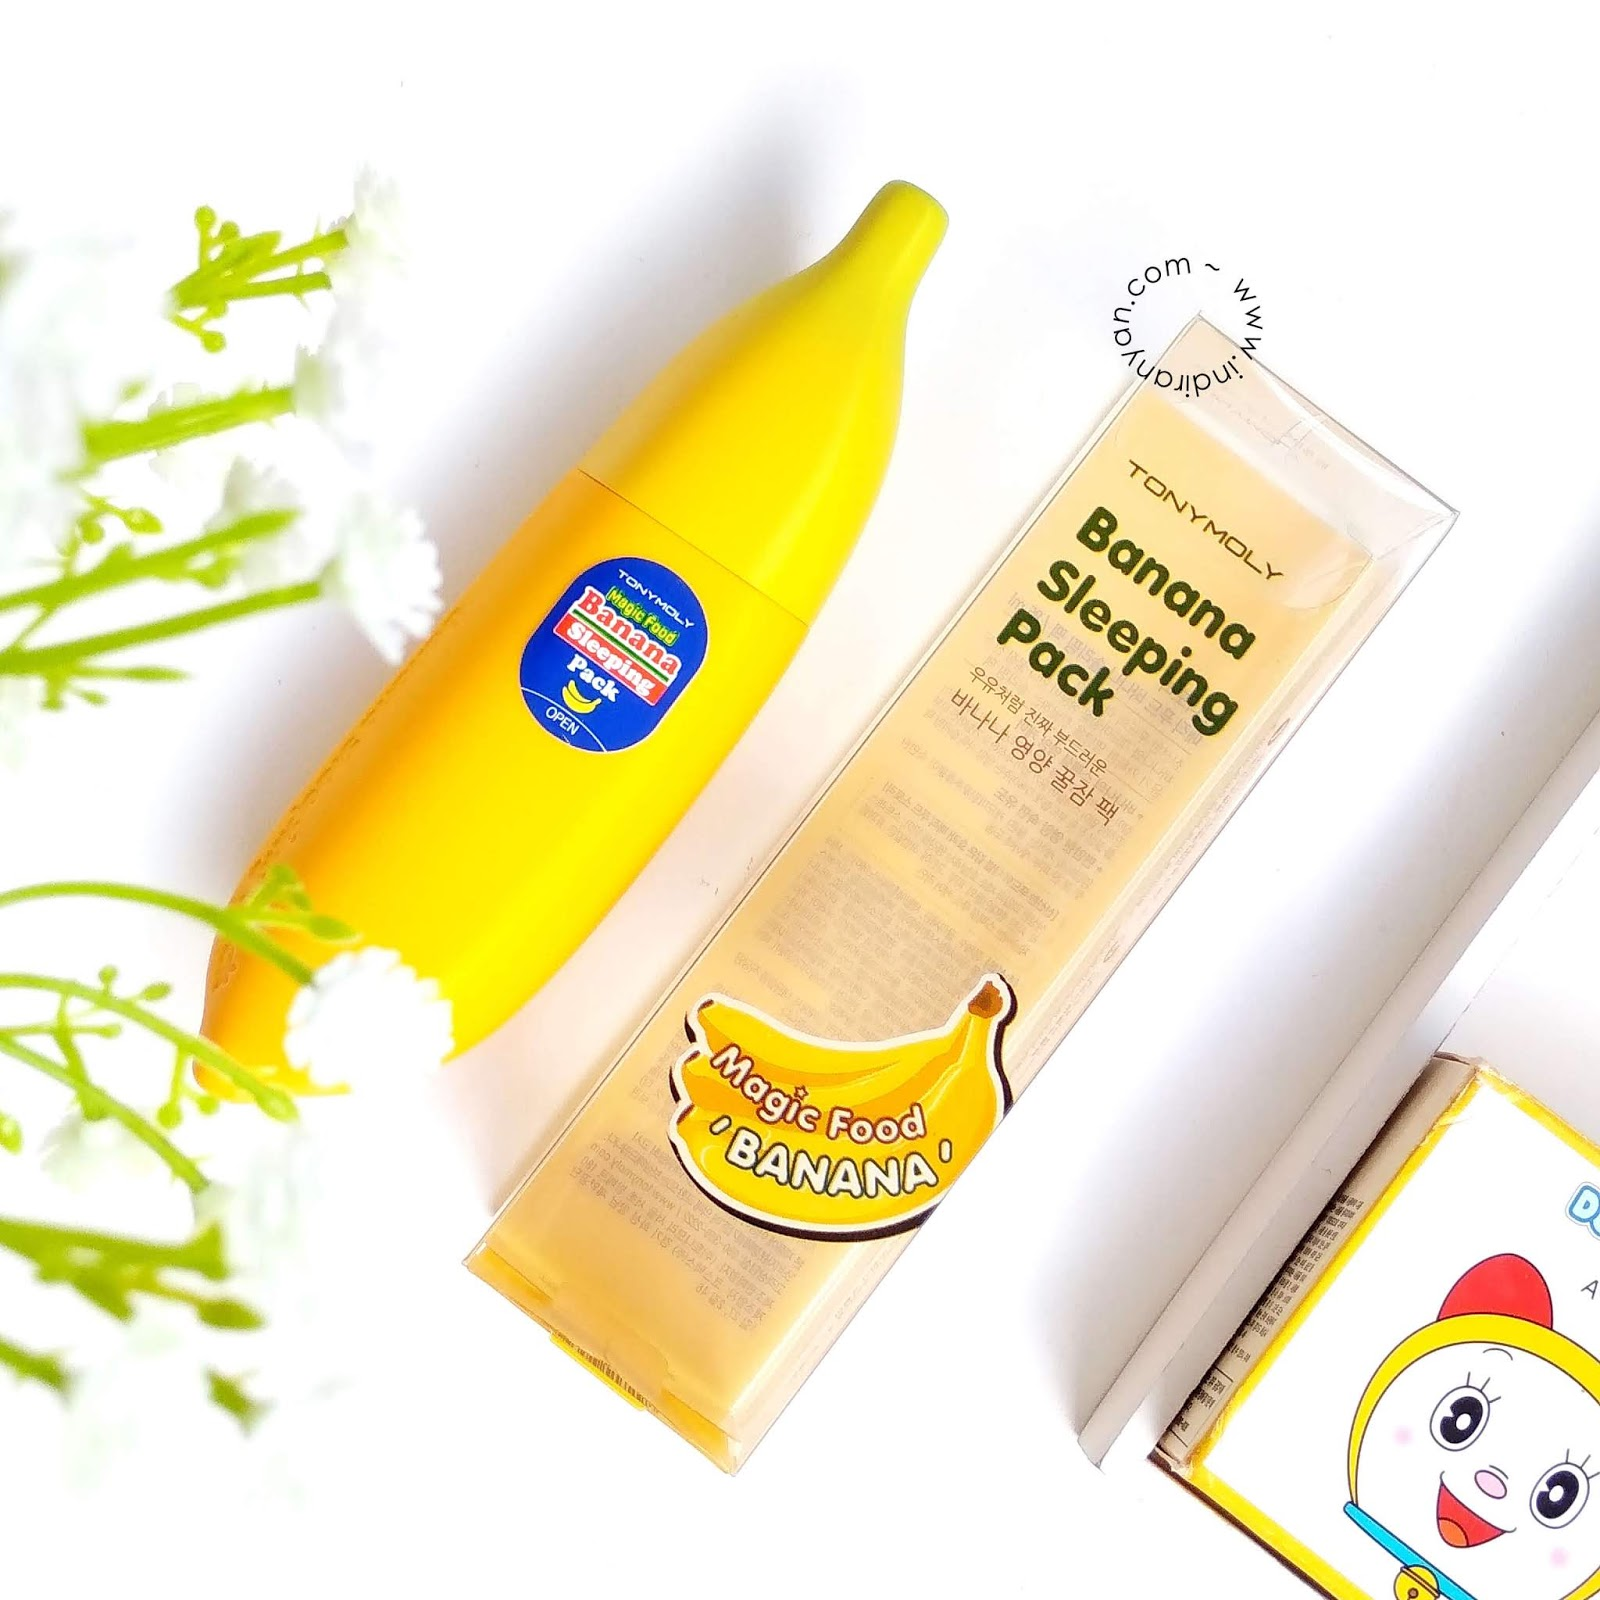 tony-moly-banana-sleeping-pack-review-indonesia, tony-moly-banana-sleeping-pack